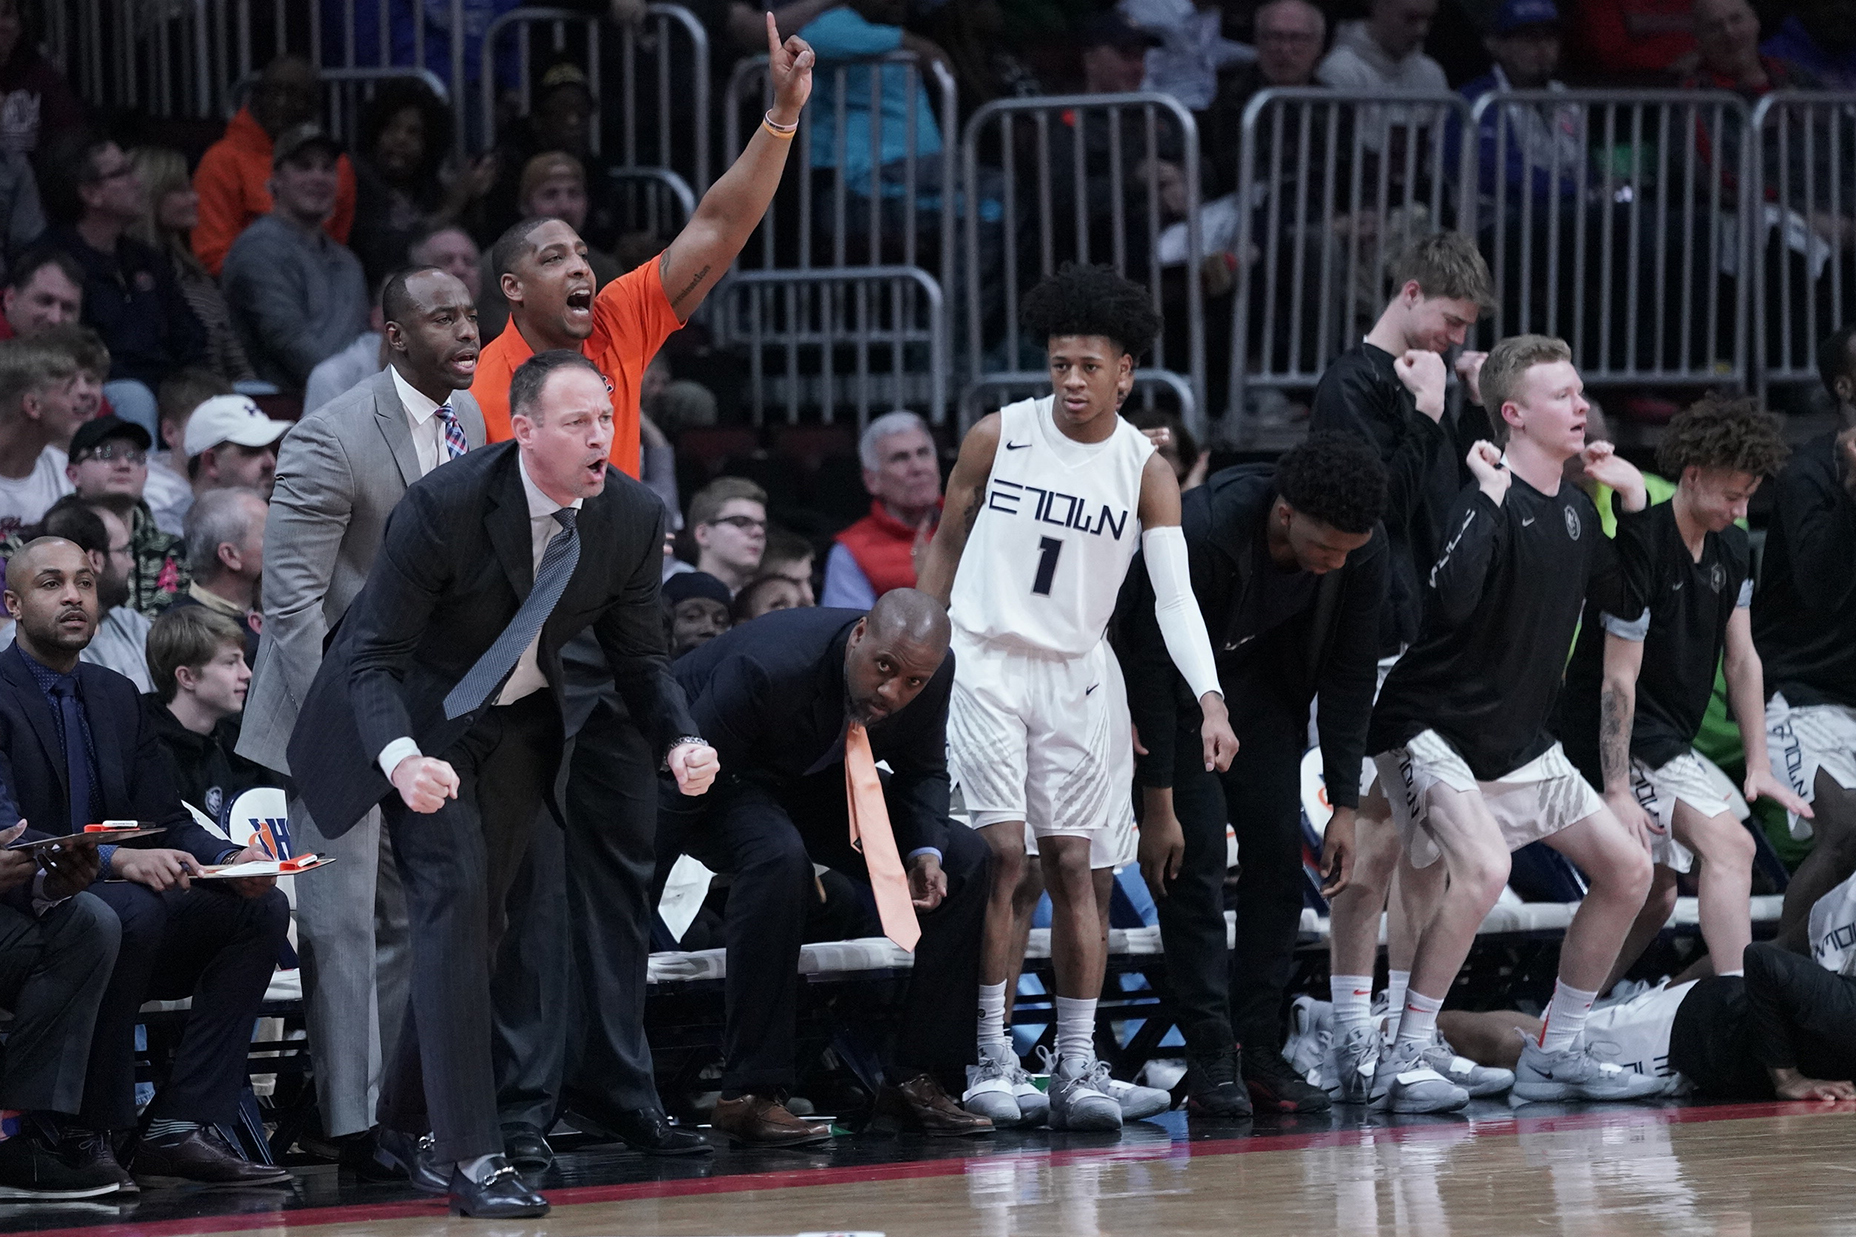 Evanston coach Mike Ellis and his team jumps up after a call an official made against Rockford East.